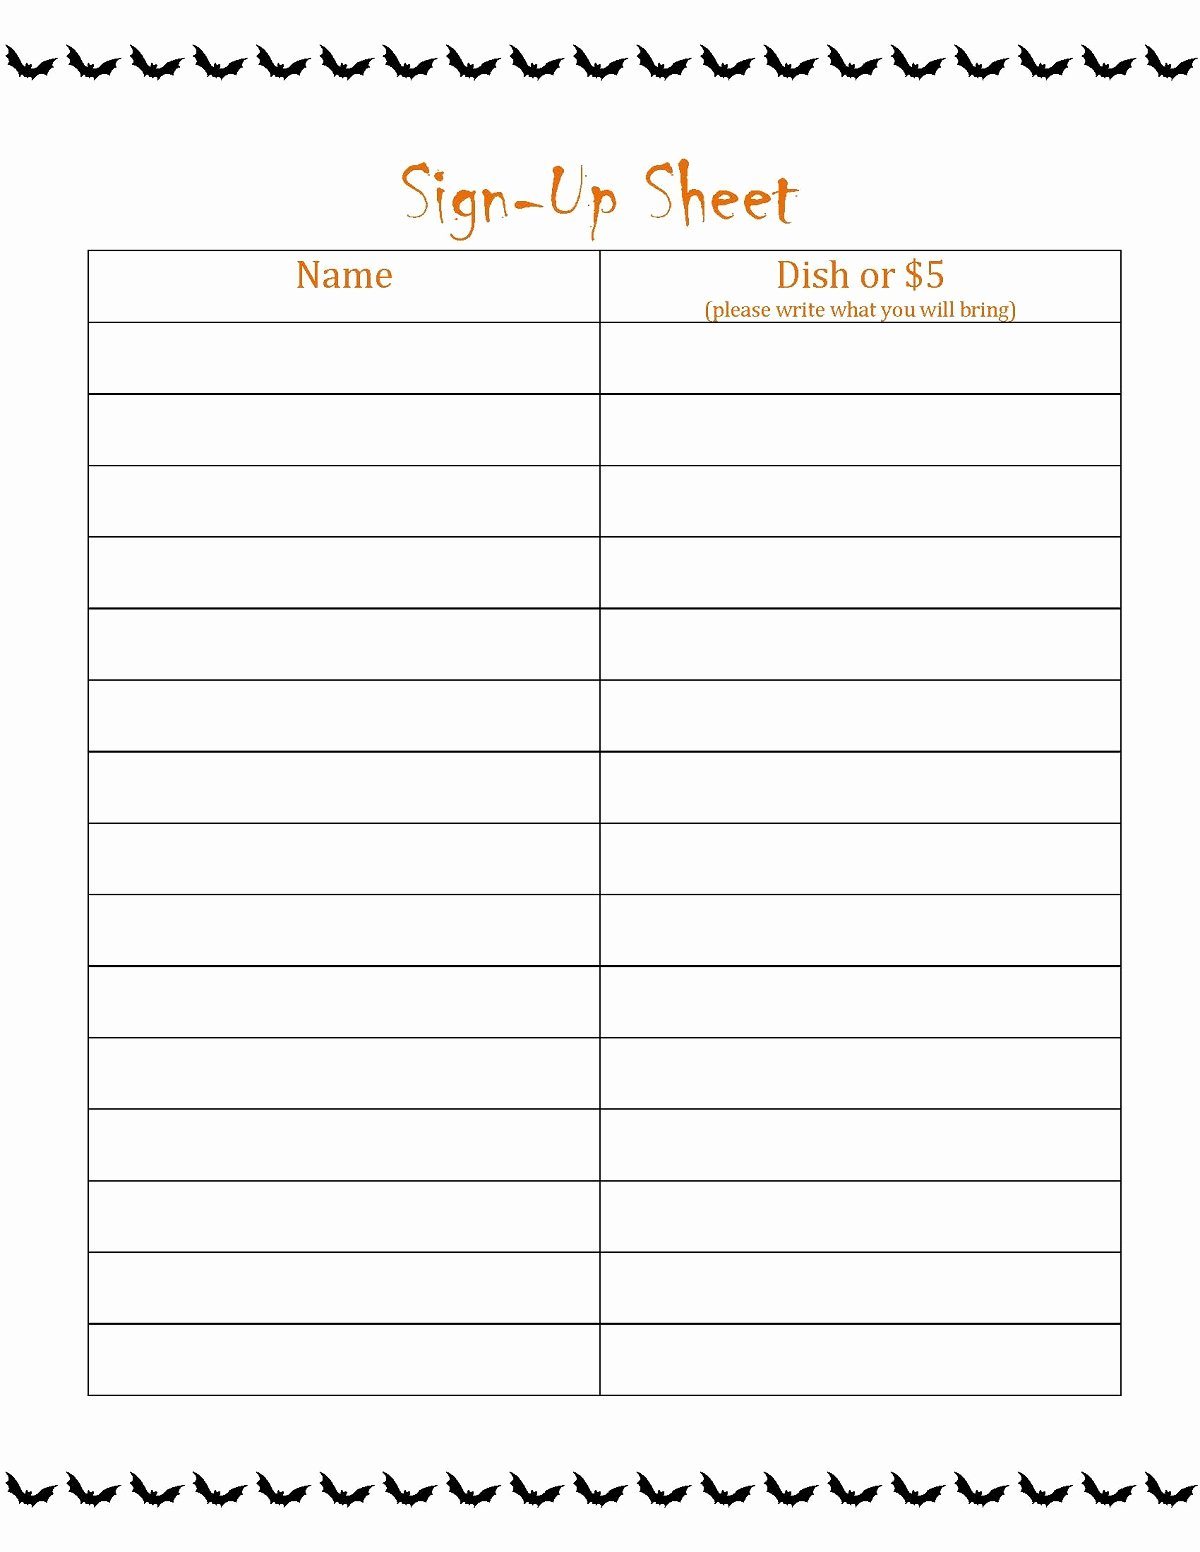 Sign Up Sheet Template Free Best Of Free Printable Sign Up Sheet Printable